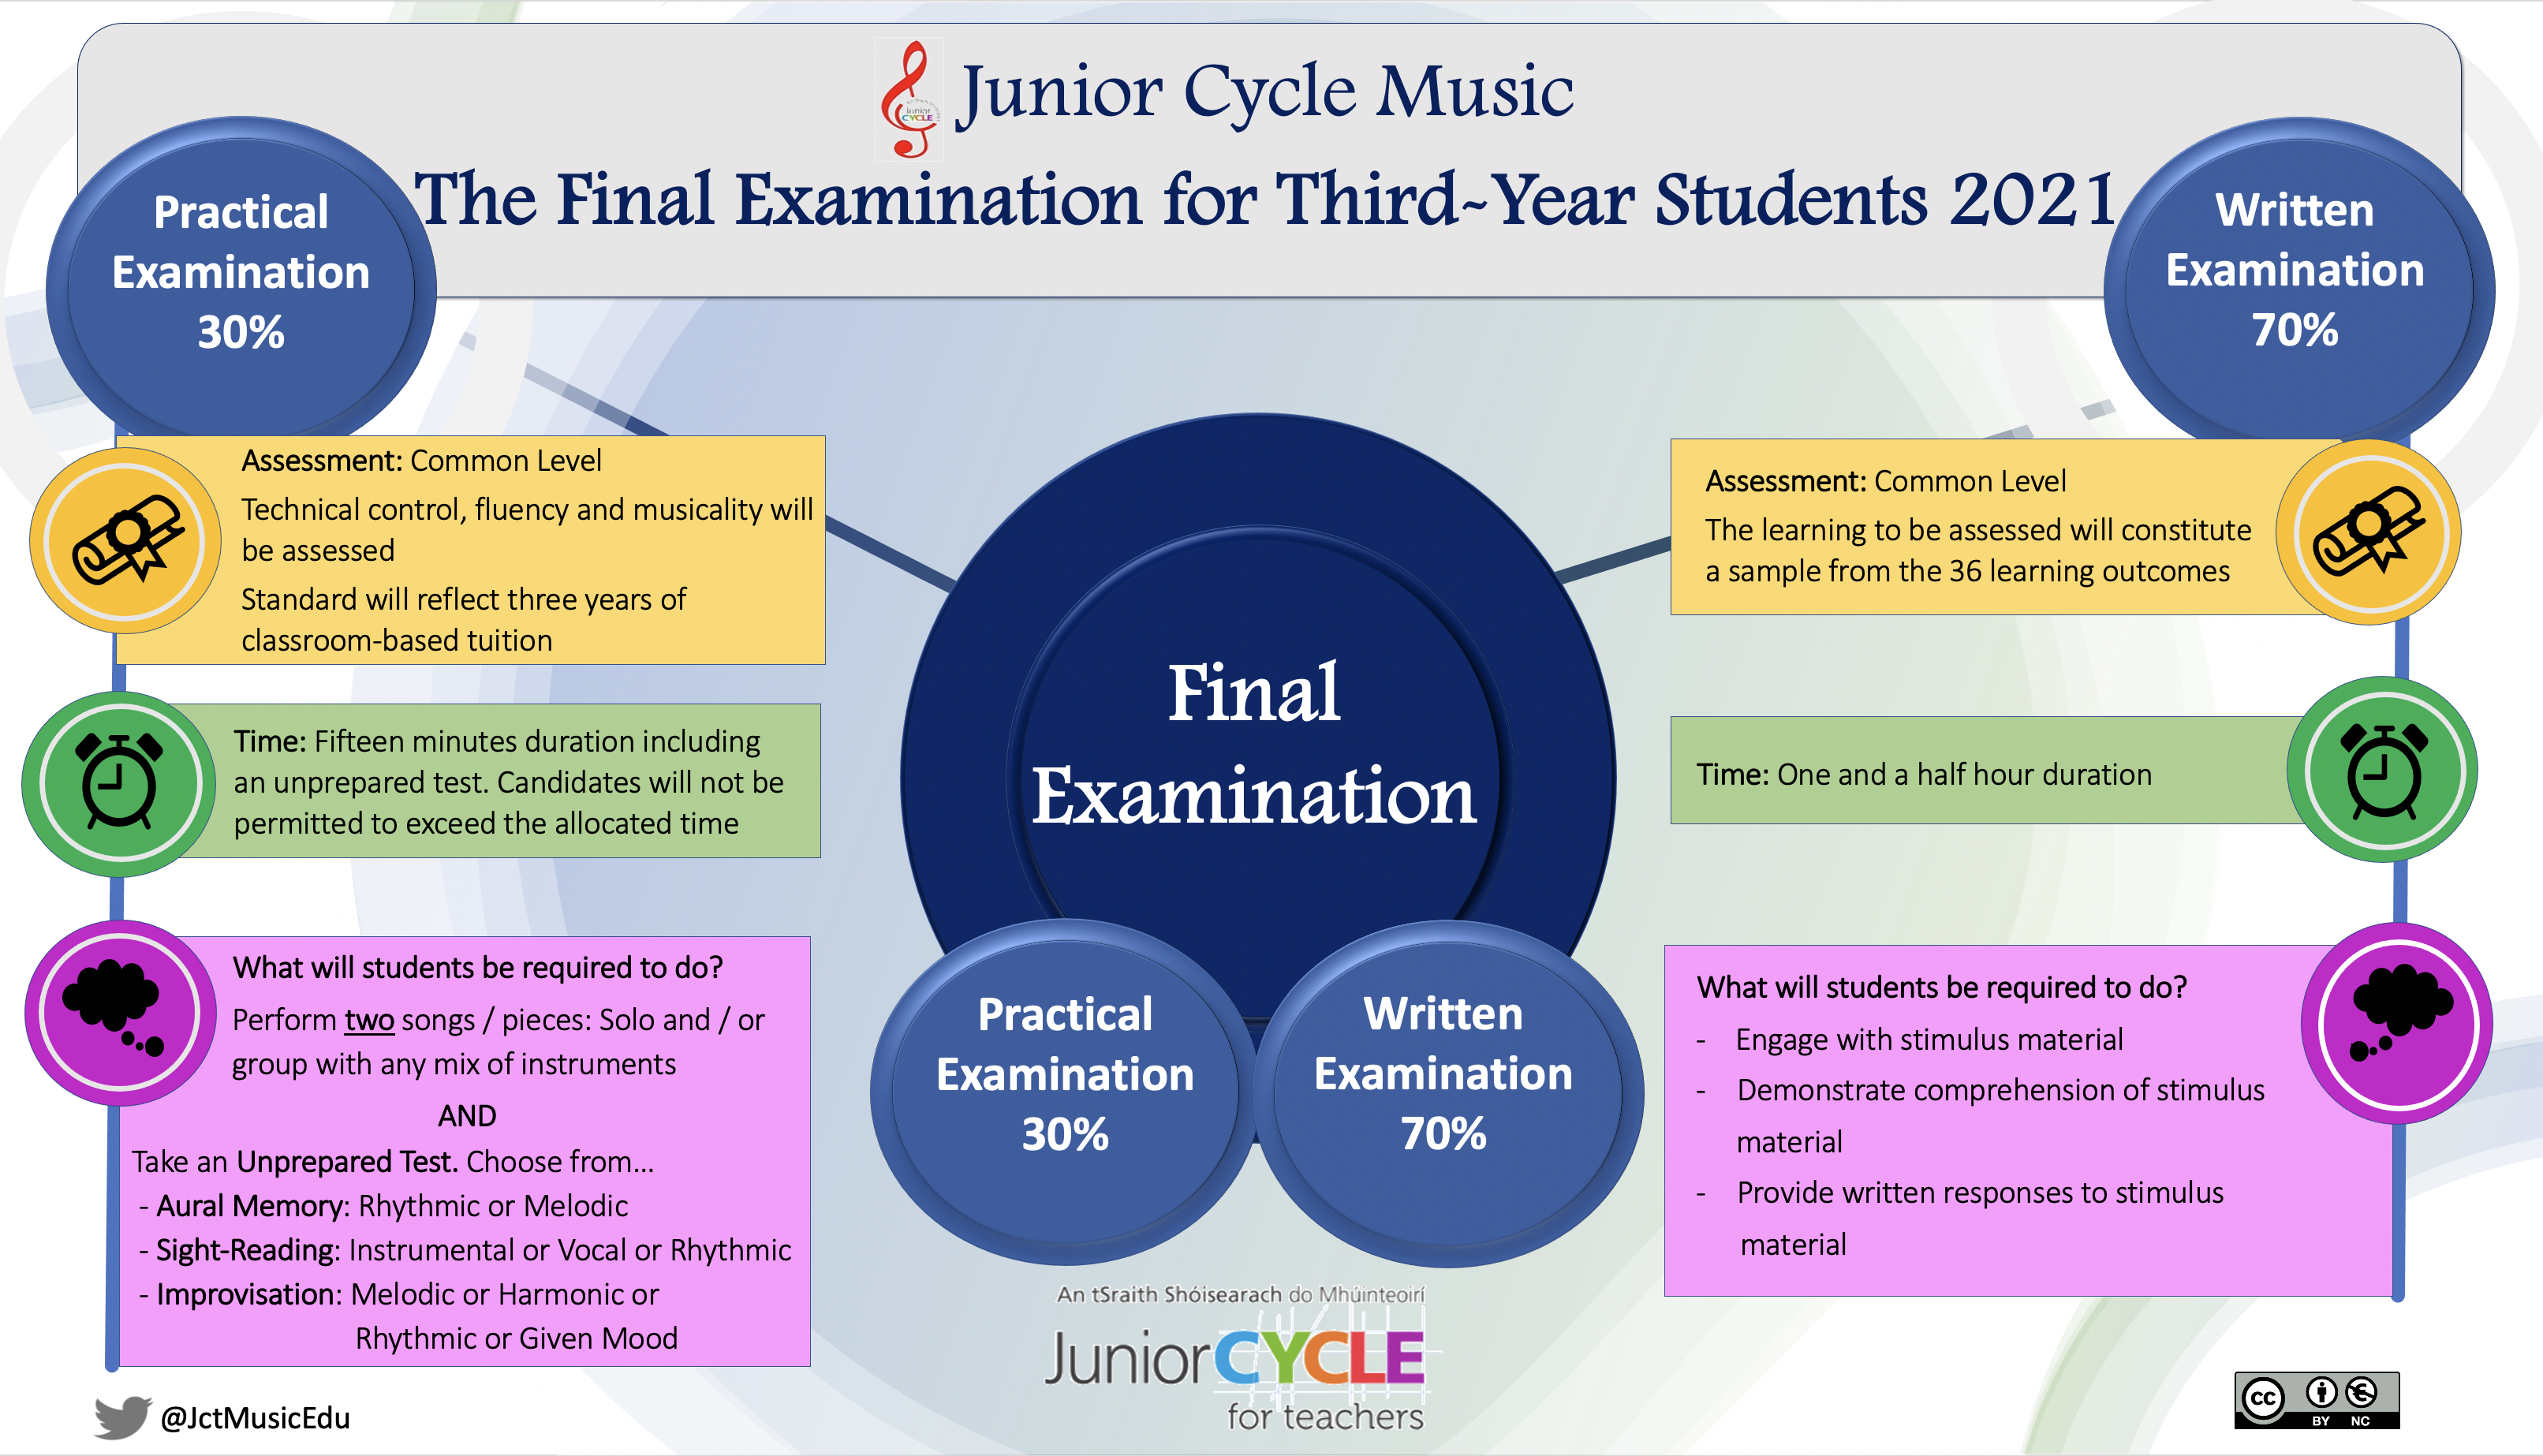 Final Examination for 3rd Year Students 2021 - Poster